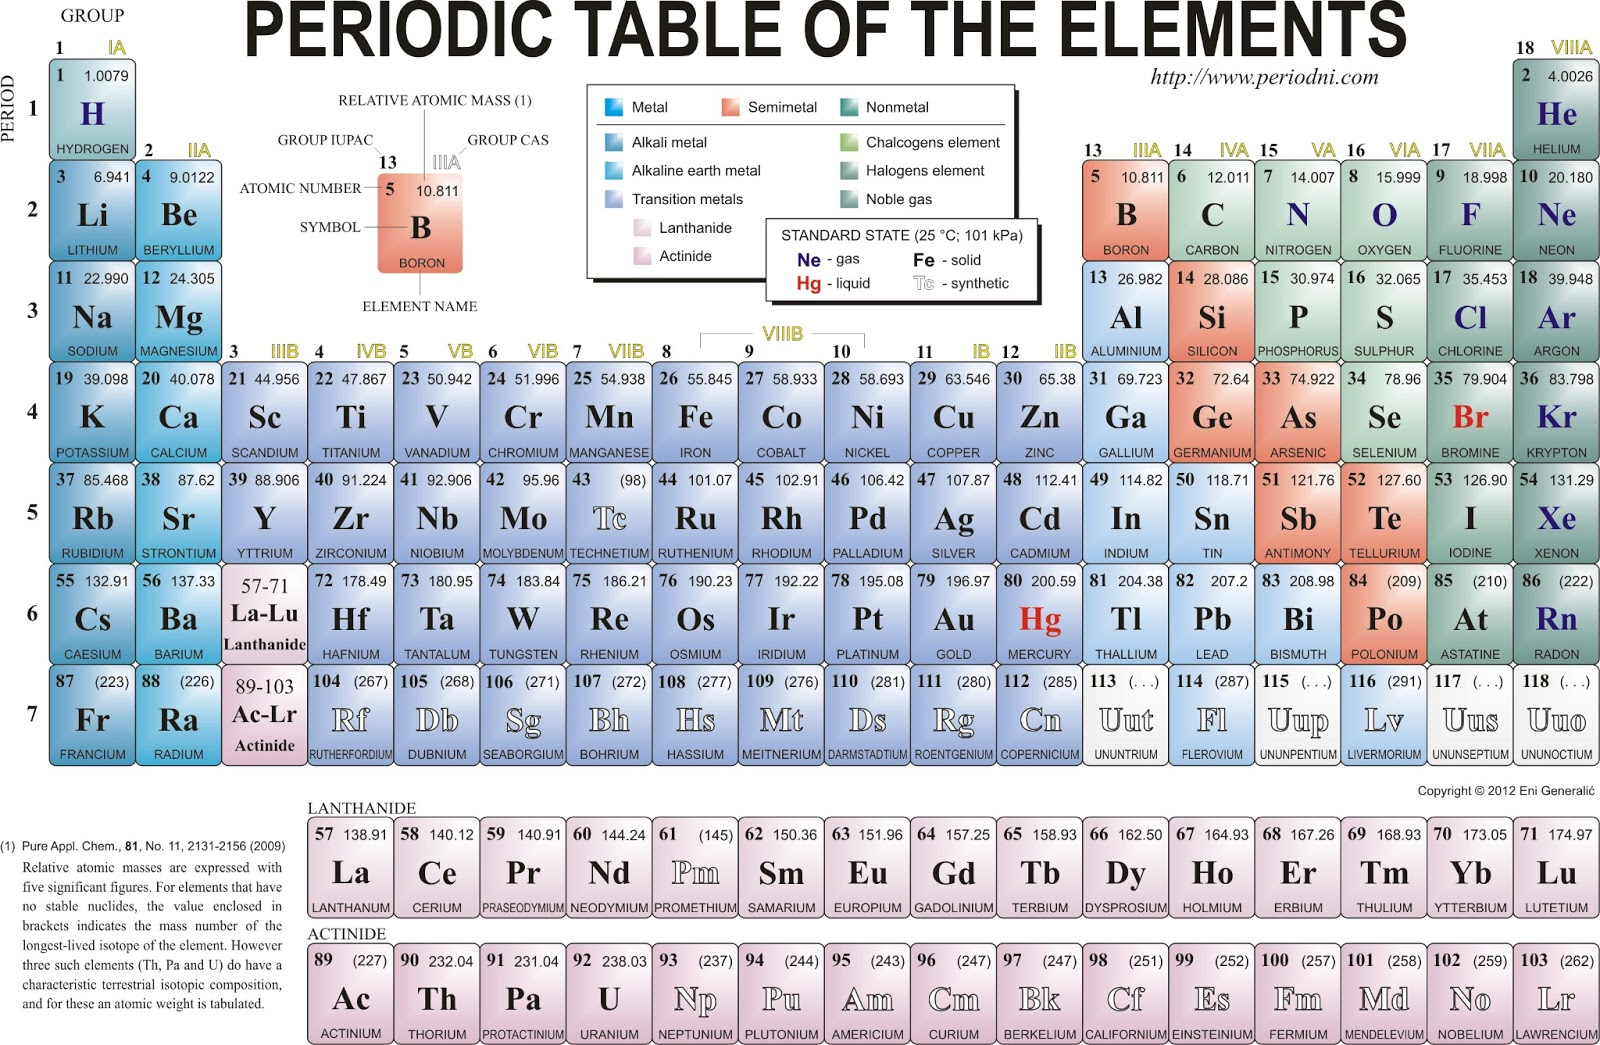 Periodic table of elements sodium periodic table elements of table sodium periodic periodic of chemizzle elements table arrangement gamestrikefo Image collections